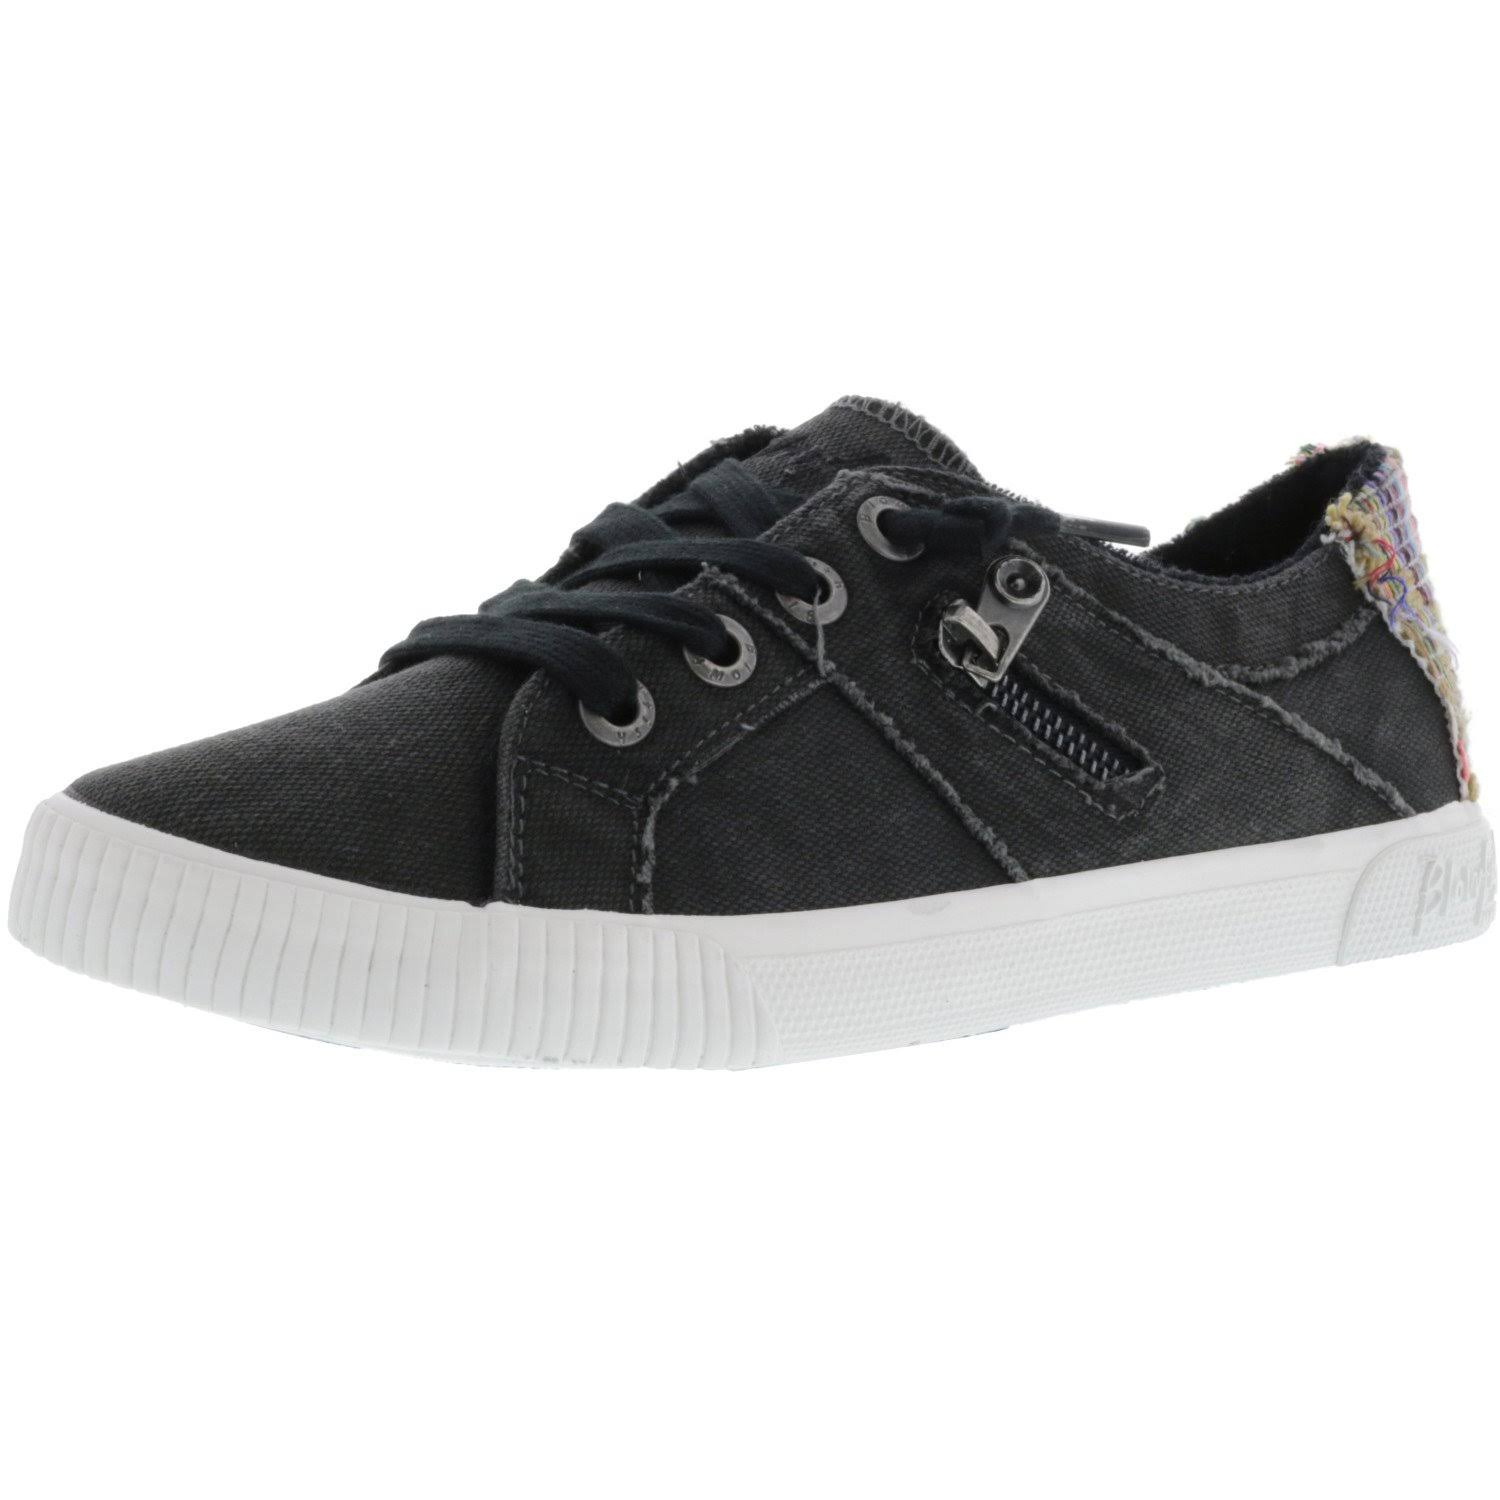 Blowfish Women's Fruit Sneakers - Black Smoked Canvas, Size 10